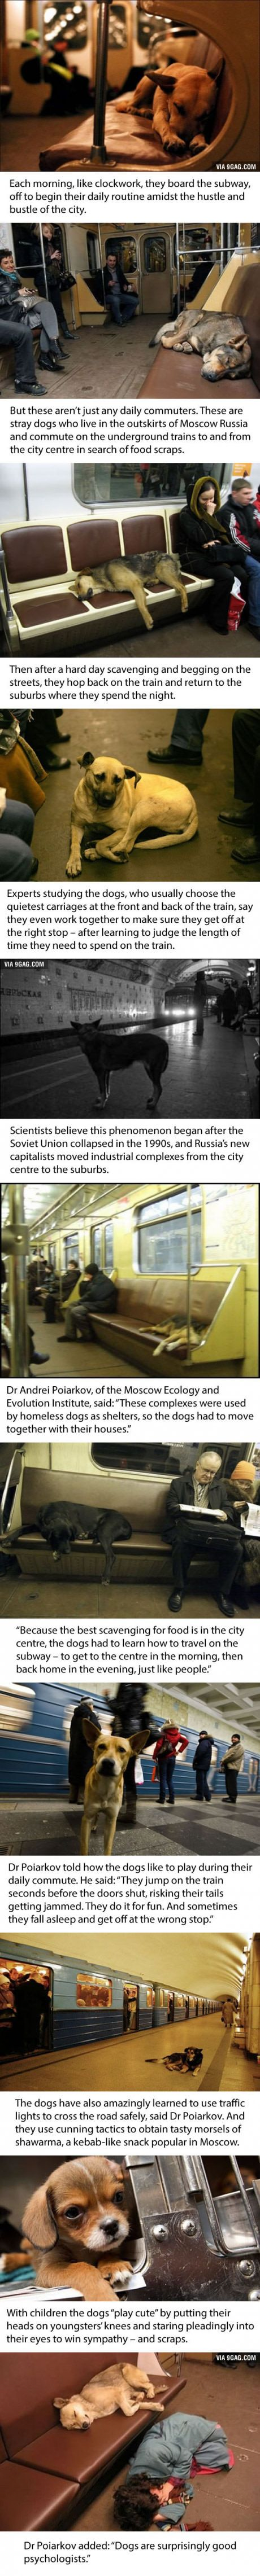 Dogs in Russia this phenomenon about how these animals travel and scrap for food is amazing. Dog Psychology